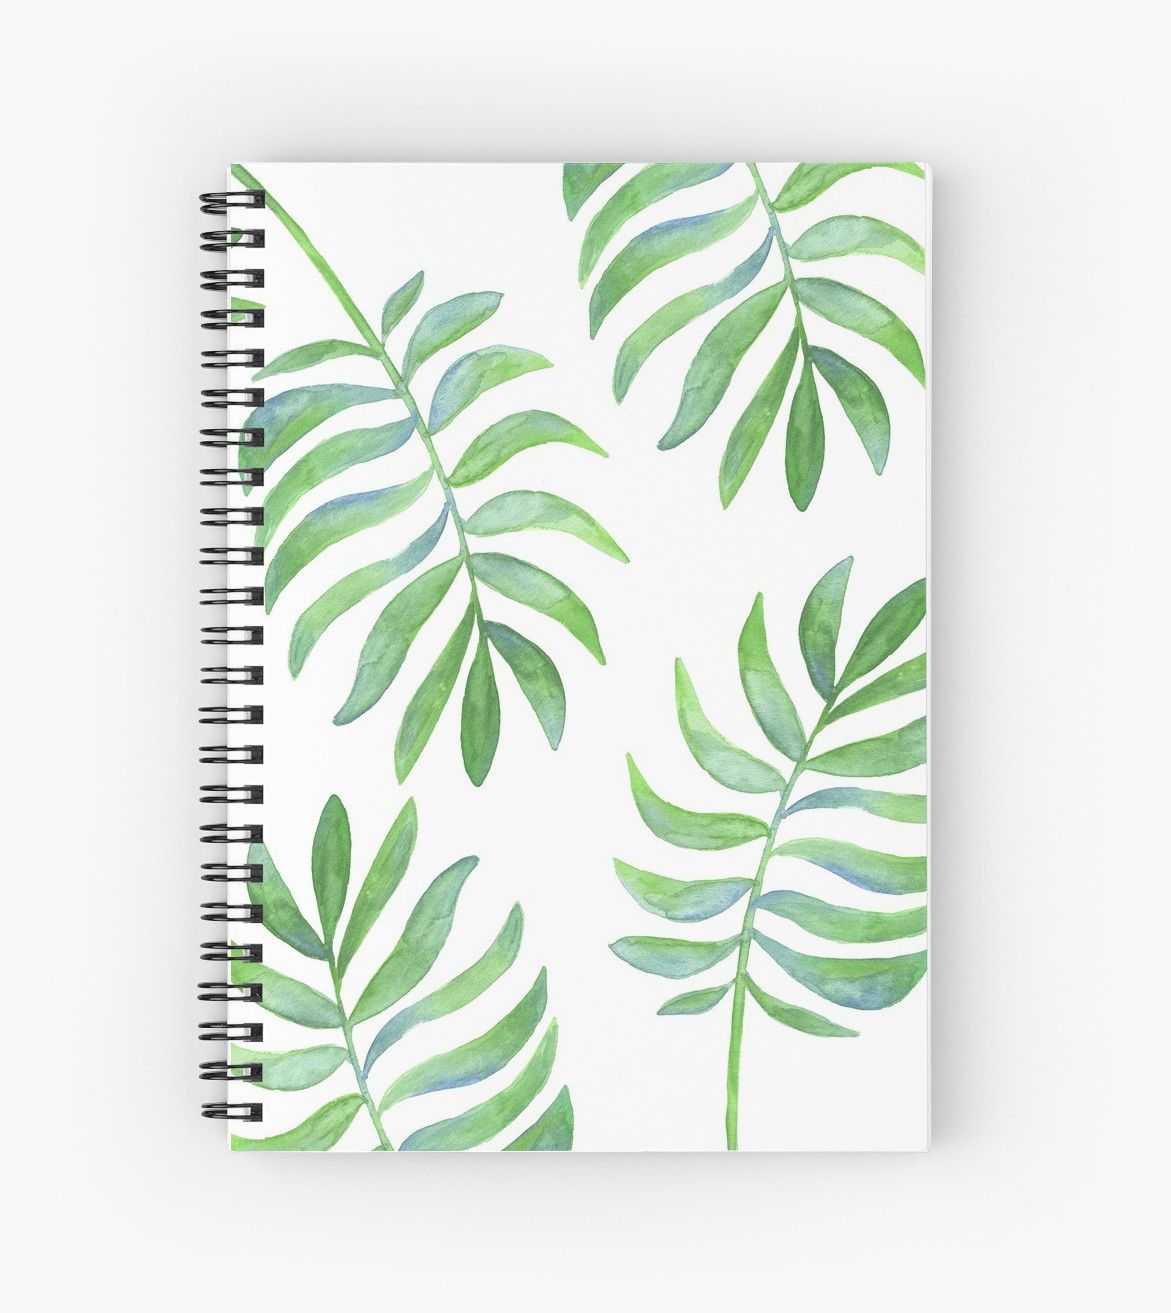 Watercolor Tropical Palm Leaf Pattern Spiral Notebook Diy Notebook Cover Cute Notebooks For School Cool Notebooks 22 png files with transparent backgrounds each file is in high quality 300dpi resolution. spiral notebook diy notebook cover